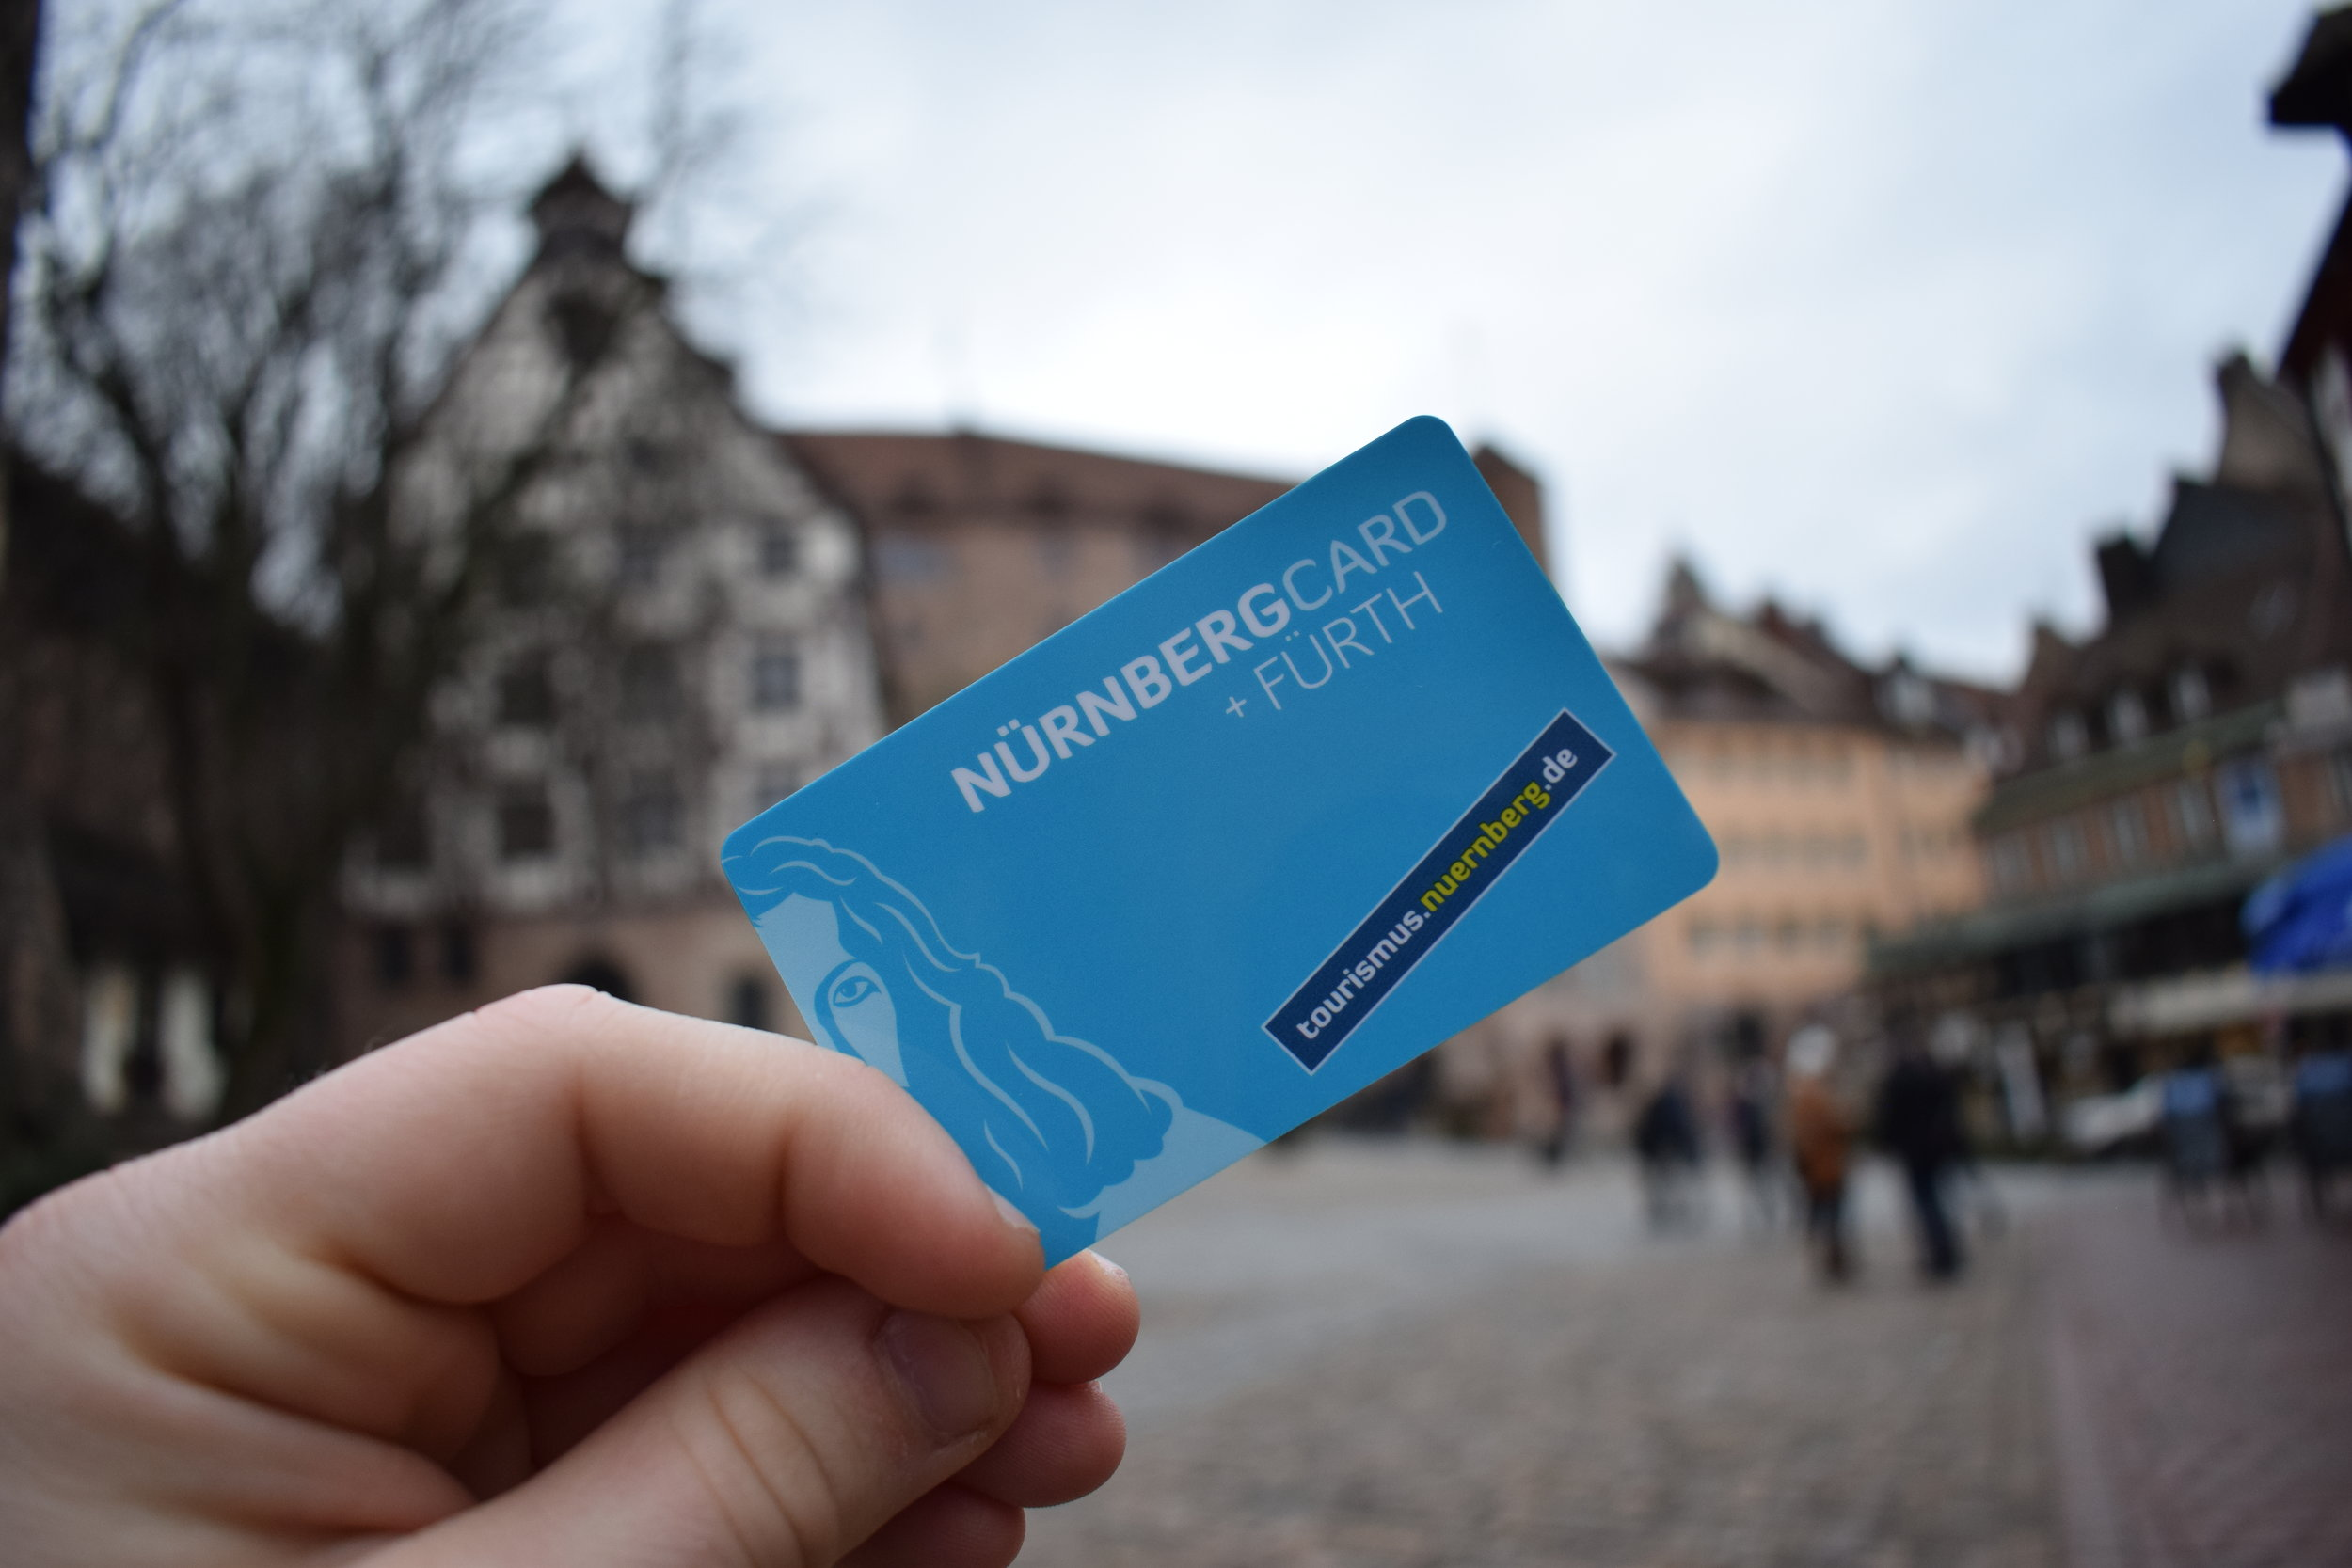 The NUREMBERG CARD is a big money saver and helps make any trip to the Bavarian city seamless.